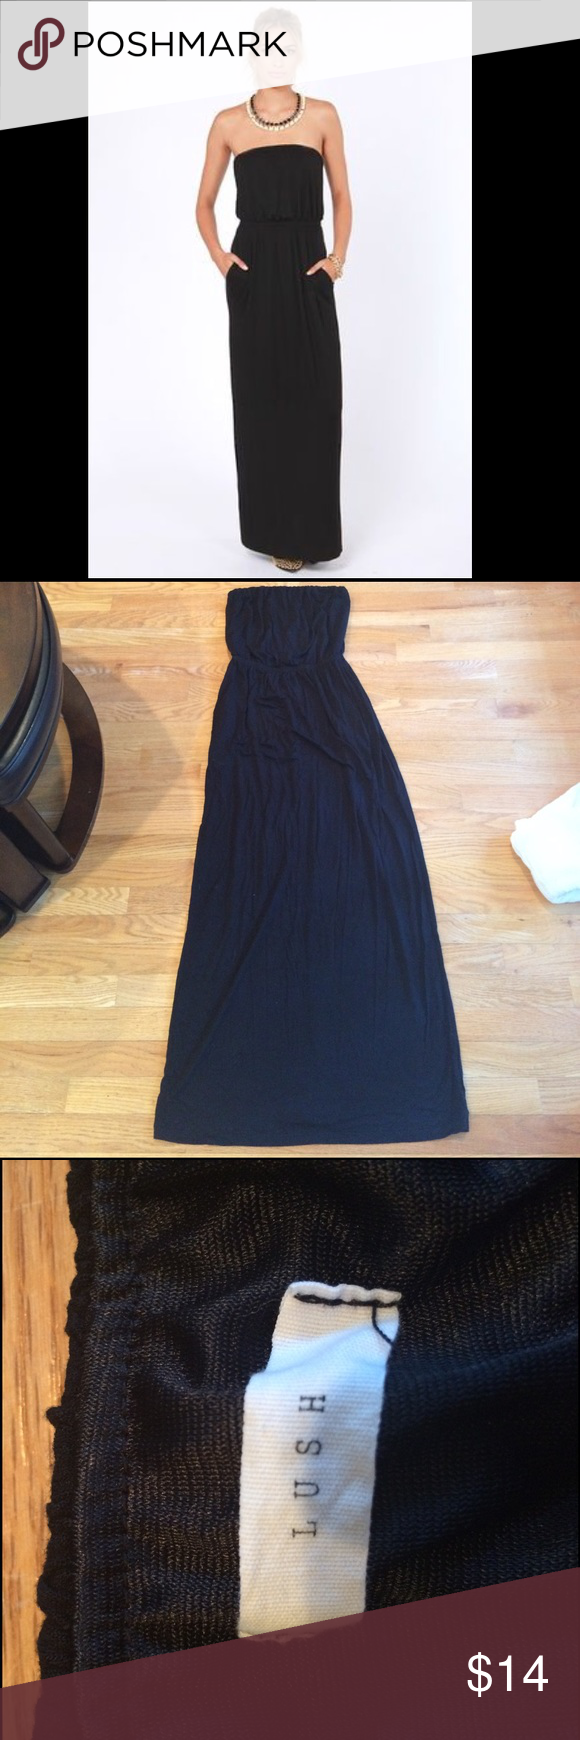 Luluus black strapless maxi dress with pockets strapless maxi